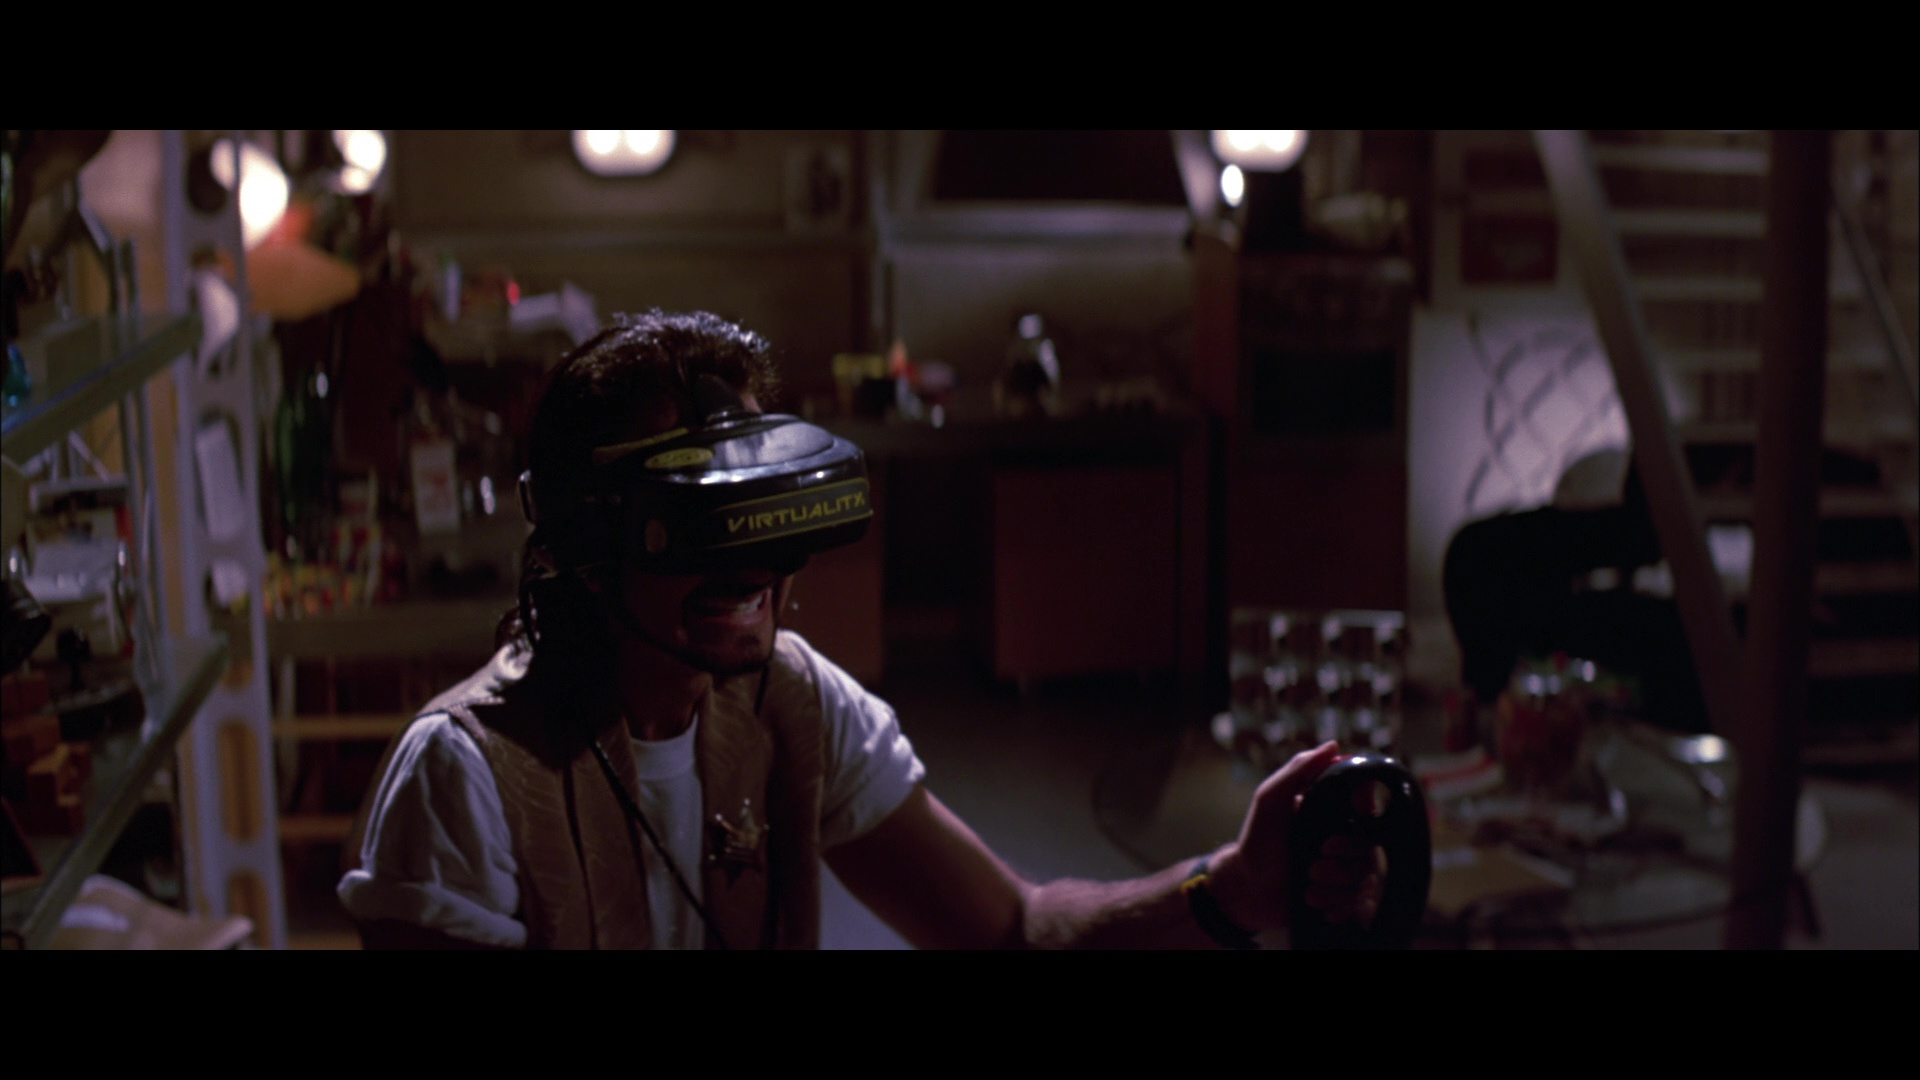 Virtuality Virtual Reality Headset Used by Fisher Stevens ...